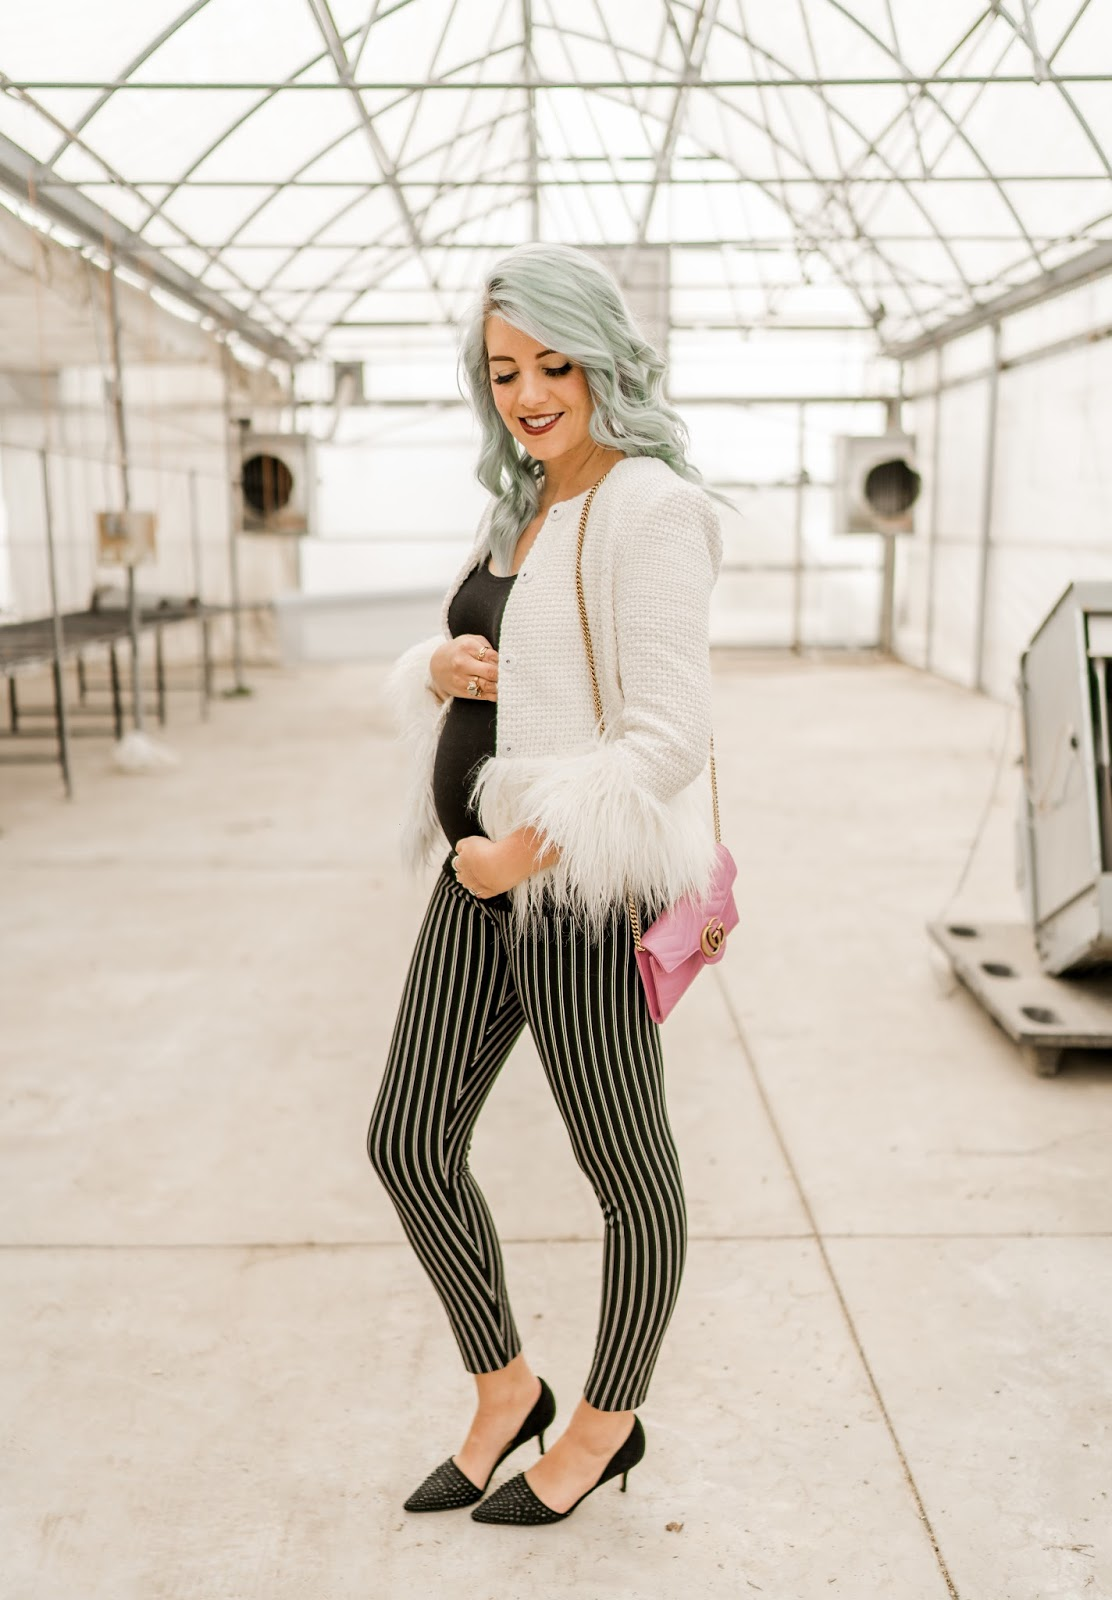 Pregnant Girl Style, Winter Outfit, Business Casual